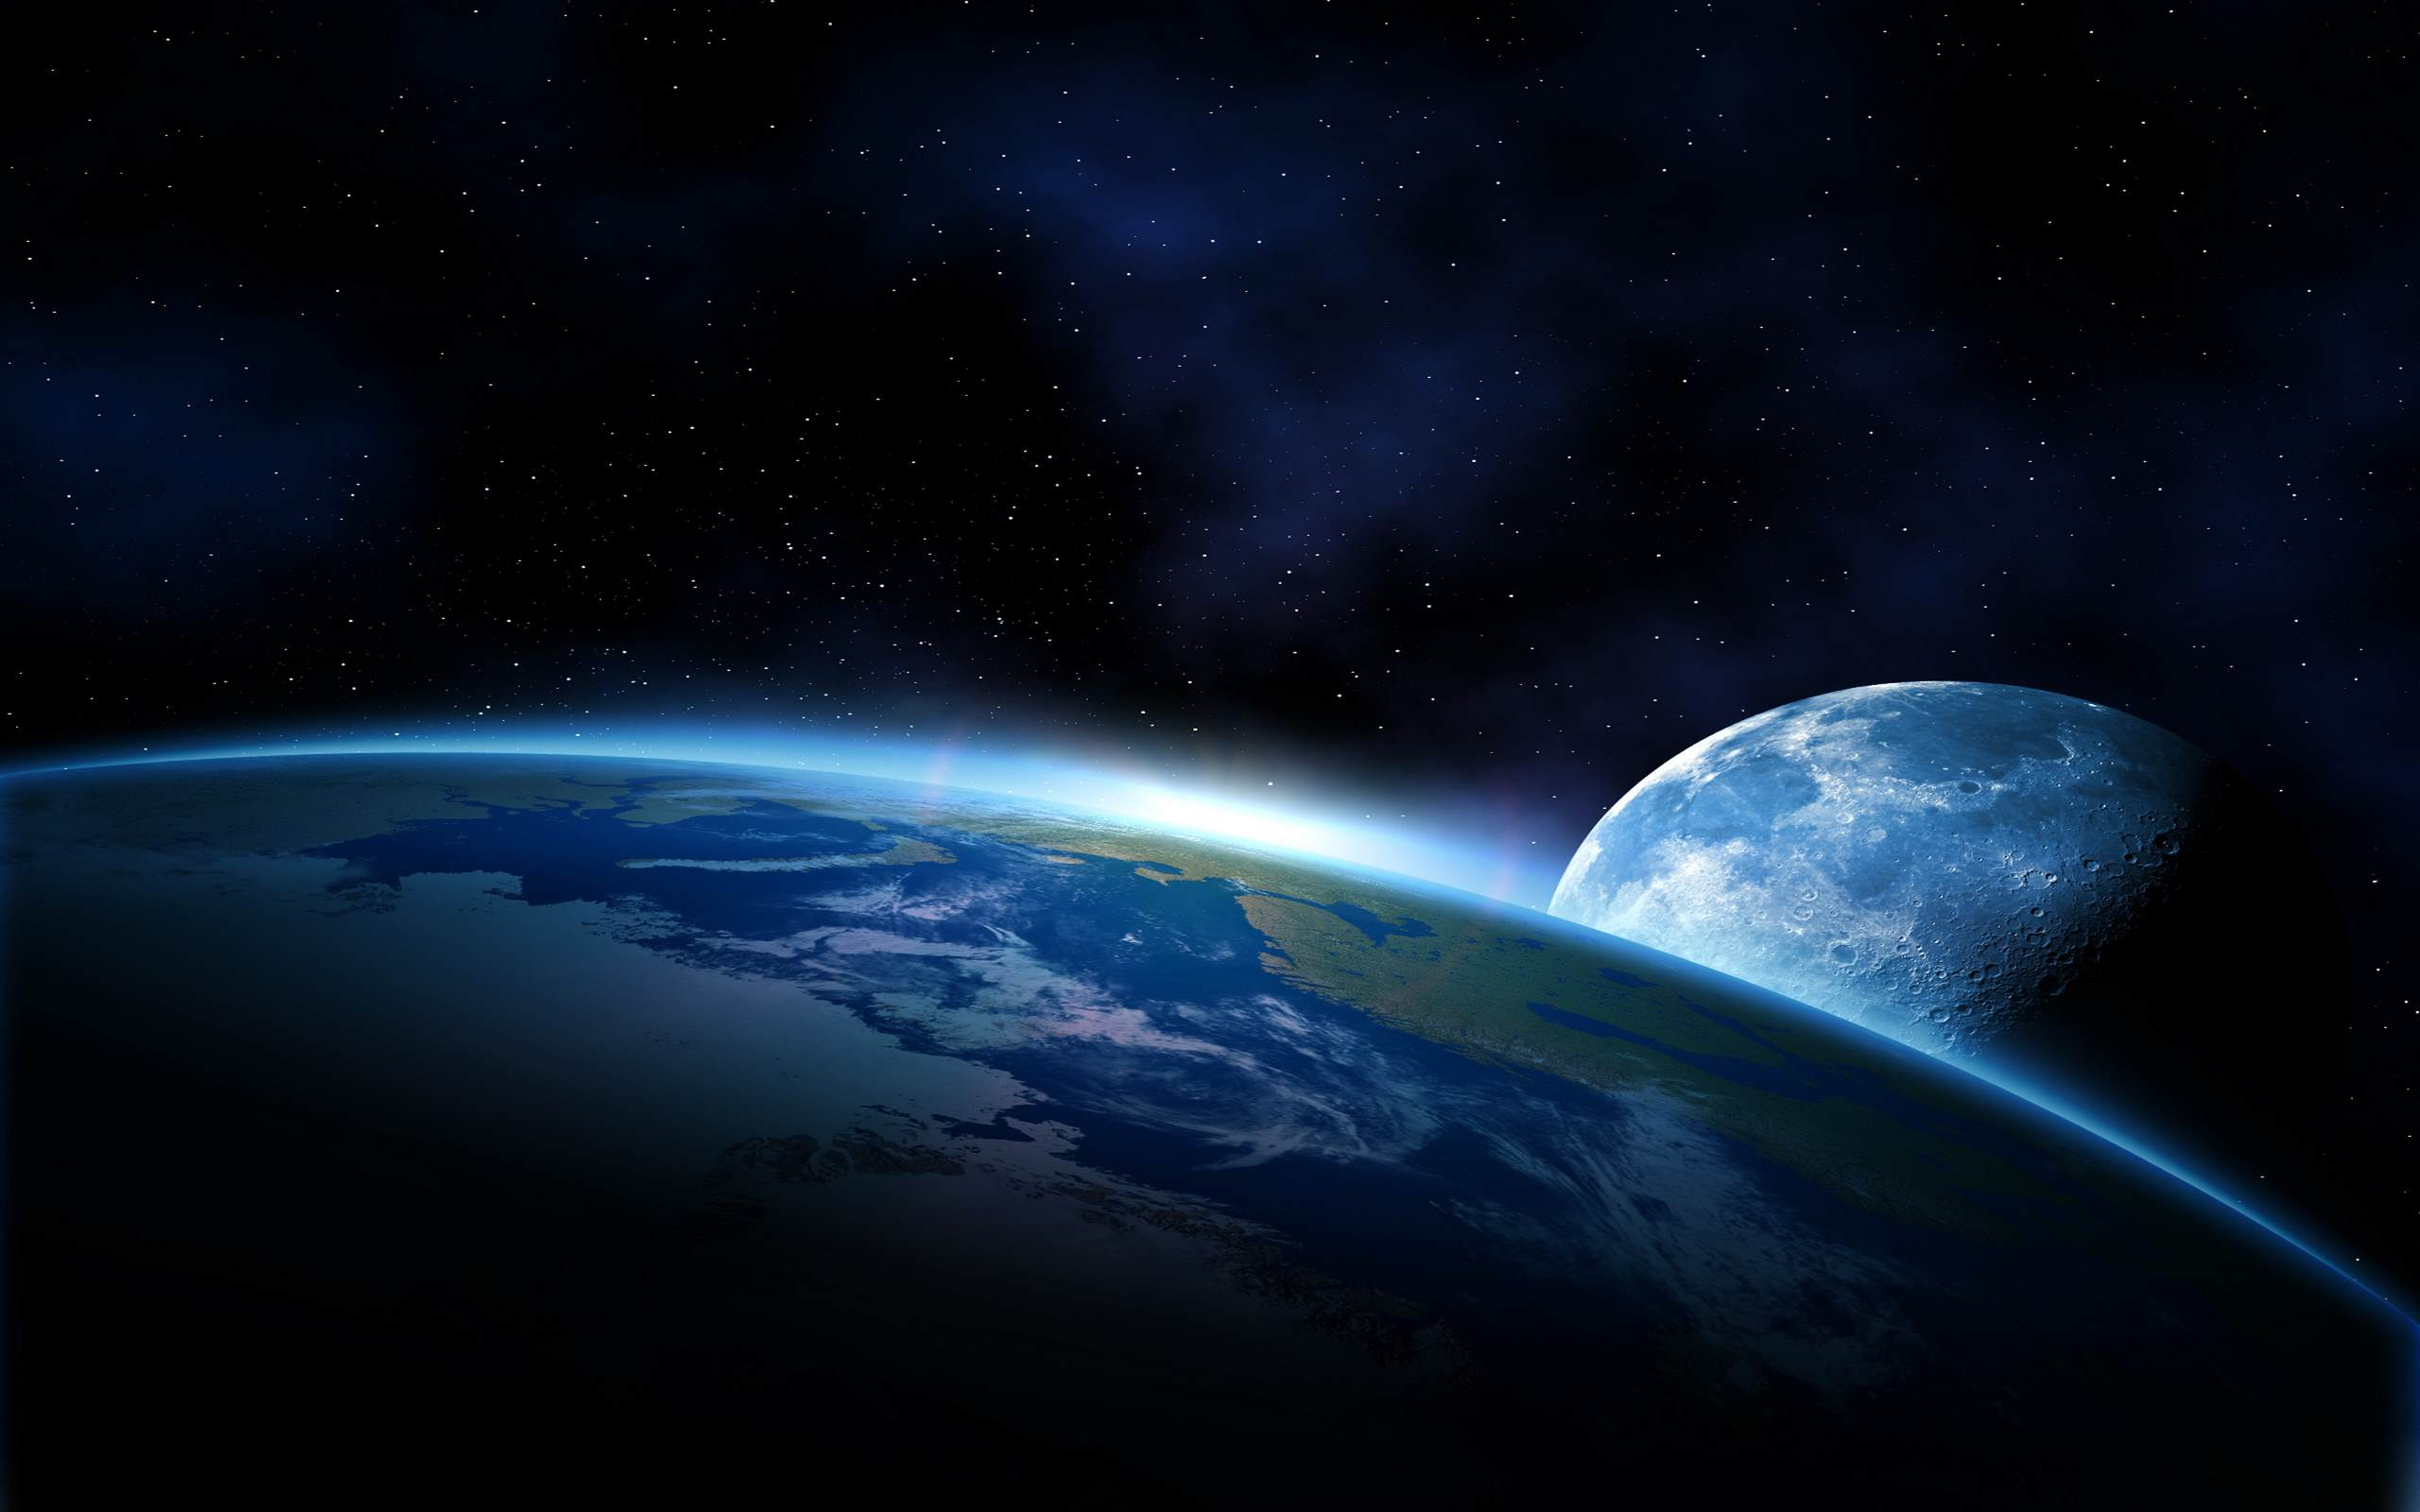 earth-from-space-wallpaper-6-copy.jpeg